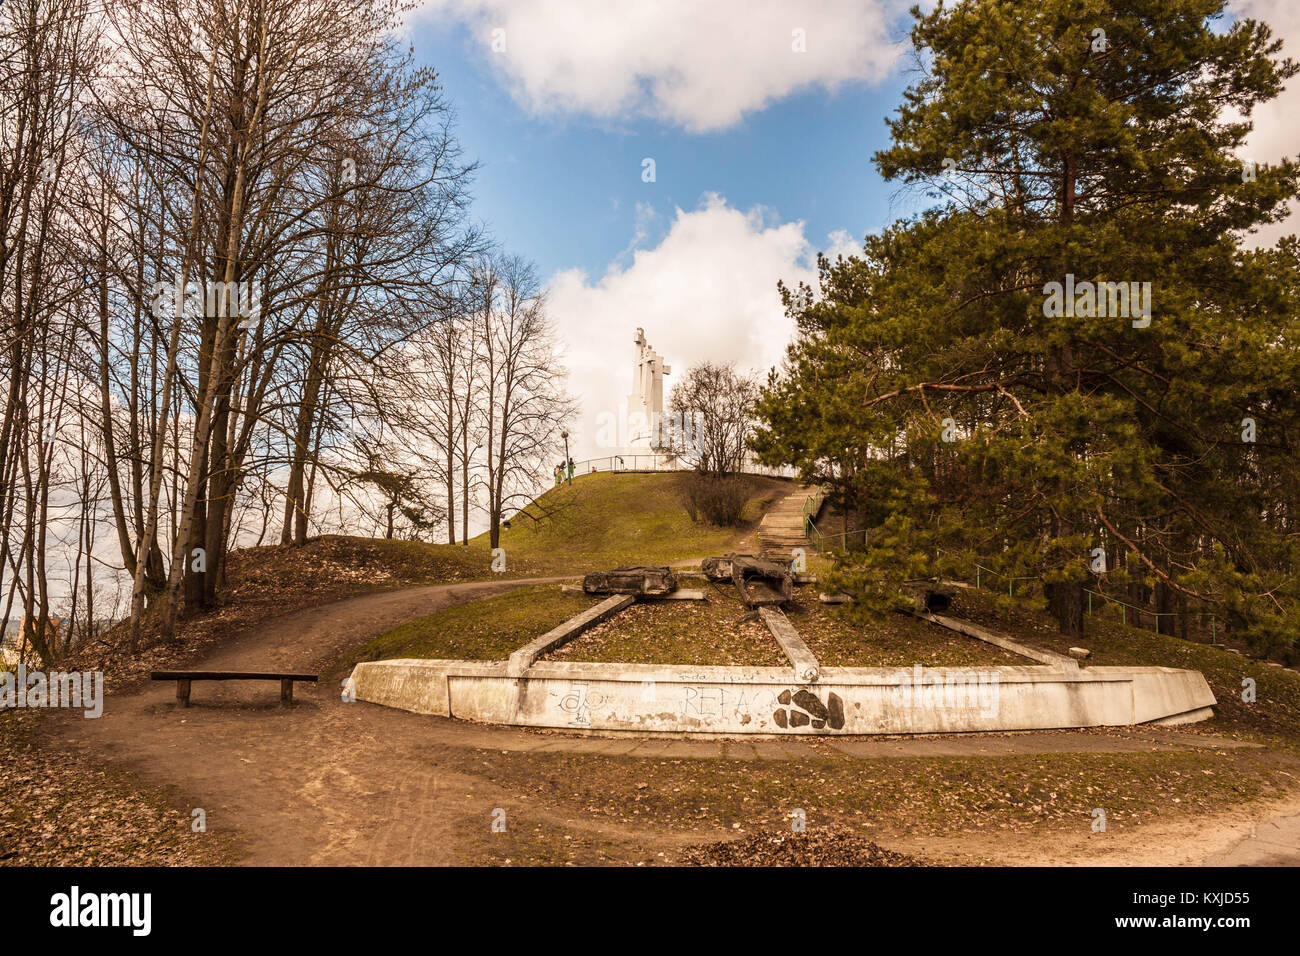 Remains of concrete Three crosses torn down in 1950 by soviets and a new monument of  Three crosses placed in 1989. Stock Photo